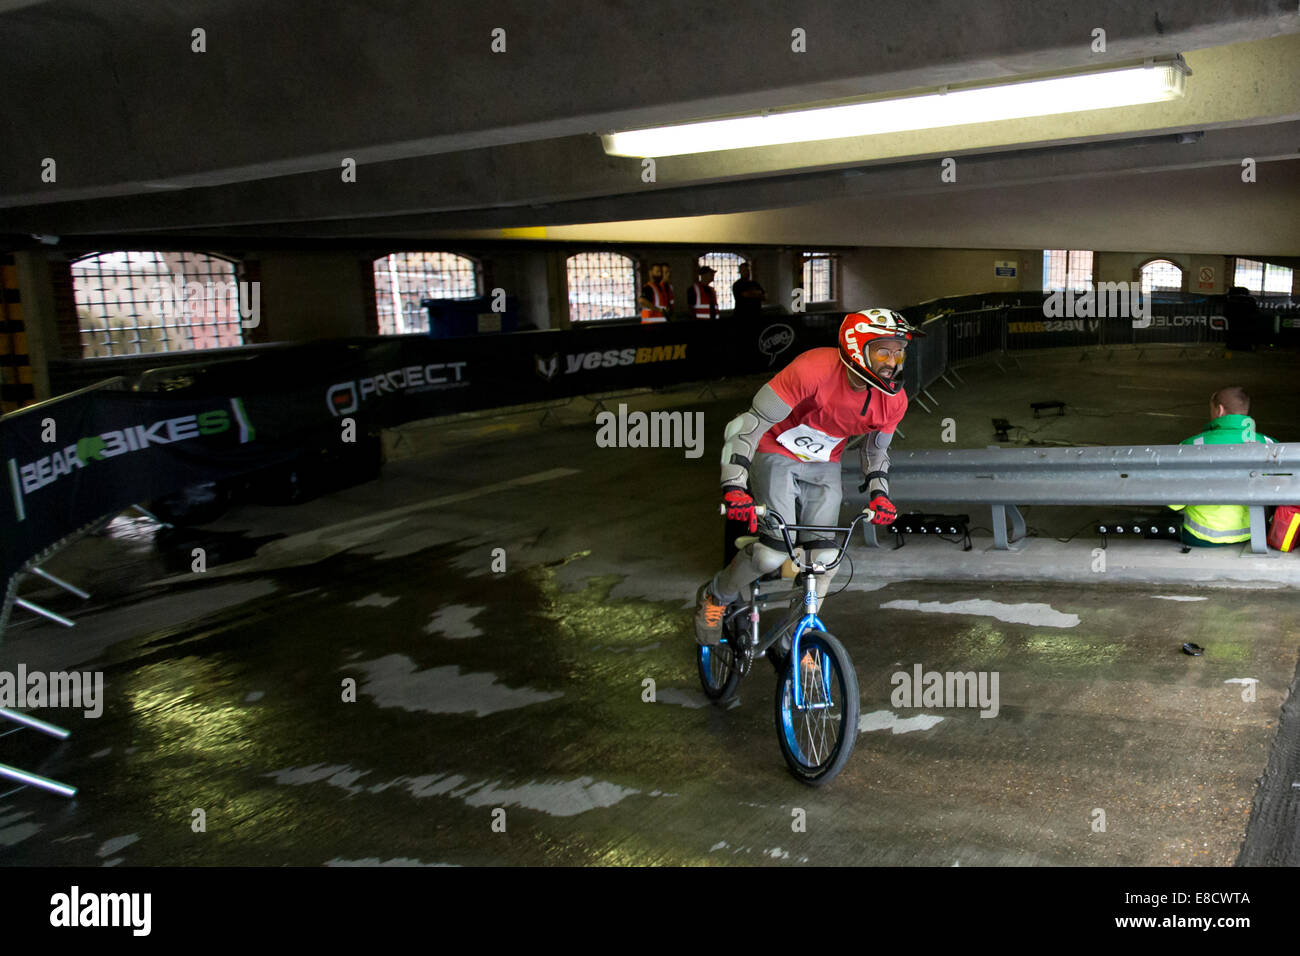 Previn JAGUTPAL (60) at Parkour Ride a multi-discipline cycling event held in an abandoned multi-storey car park, - Stock Image